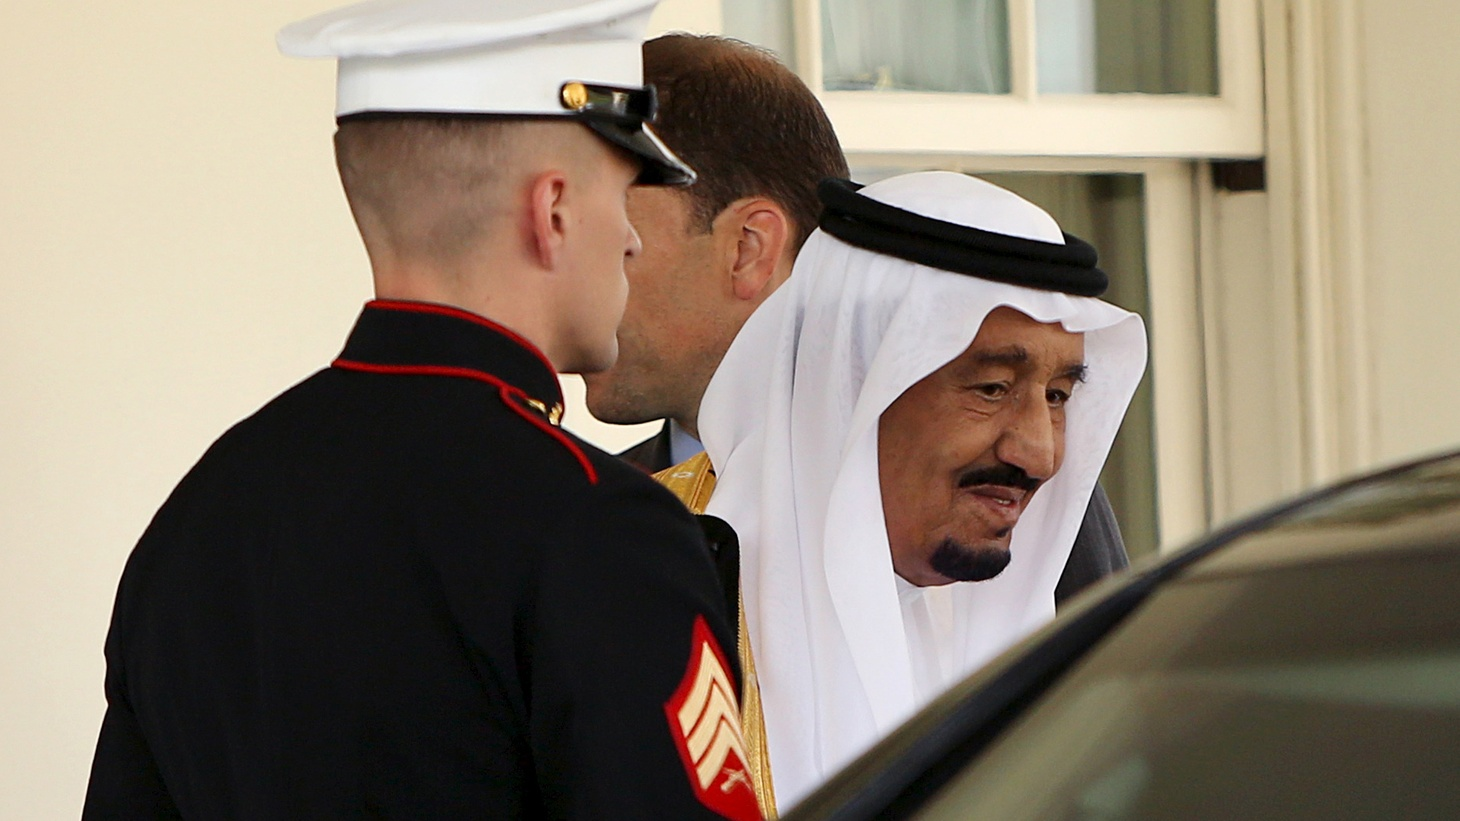 Saudi Arabia says it can live with the Iran nuclear deal after all — especially since President Obama has promised new military assistance. As the US bolsters the traditional alliance, critics are raising questions about the Kingdom's human rights record, the bombing of Yemen and the money that helps spread a radical form of Islam.